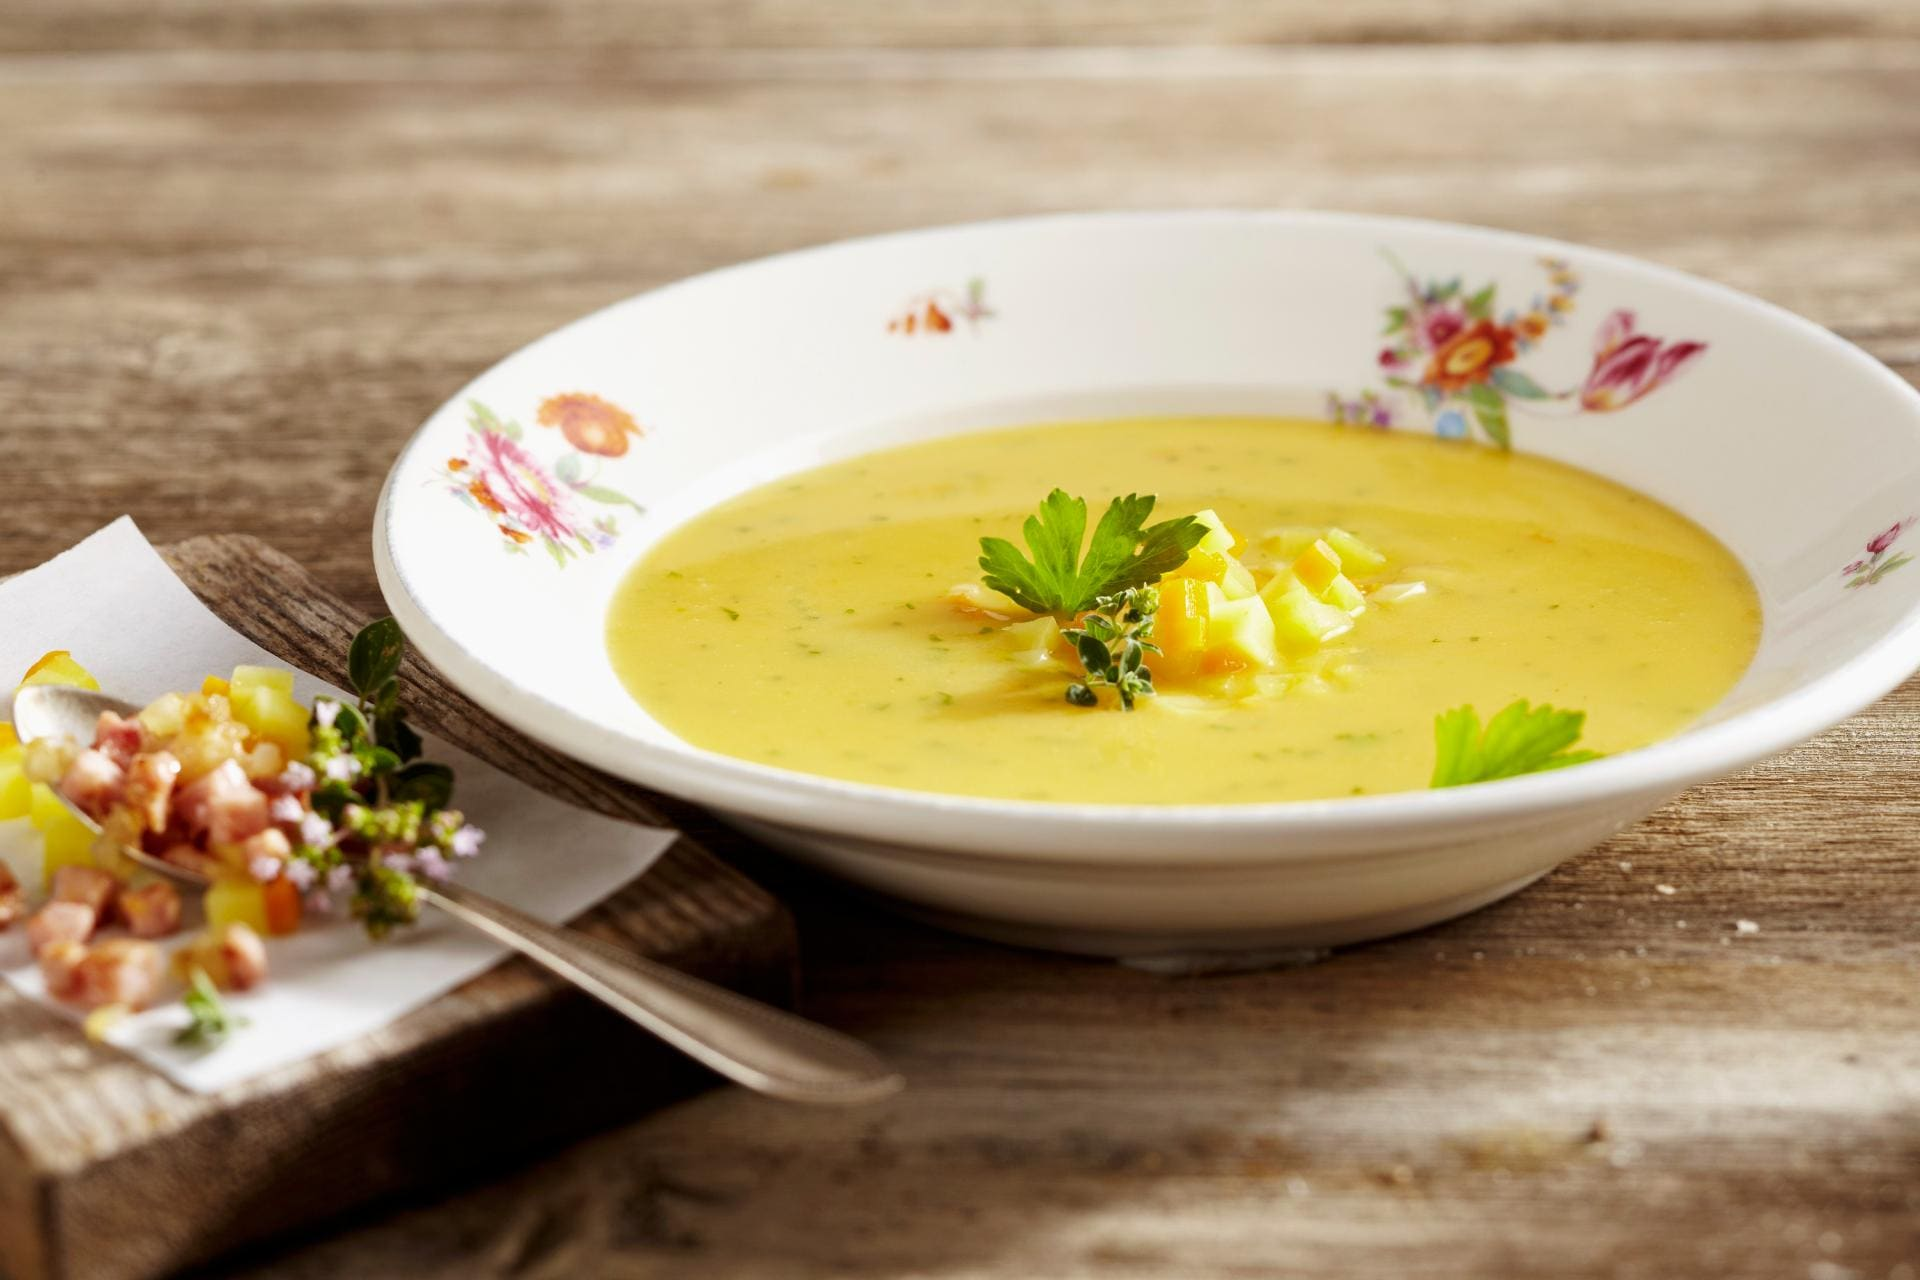 potao soup ©StockFood Teubner Foodfoto